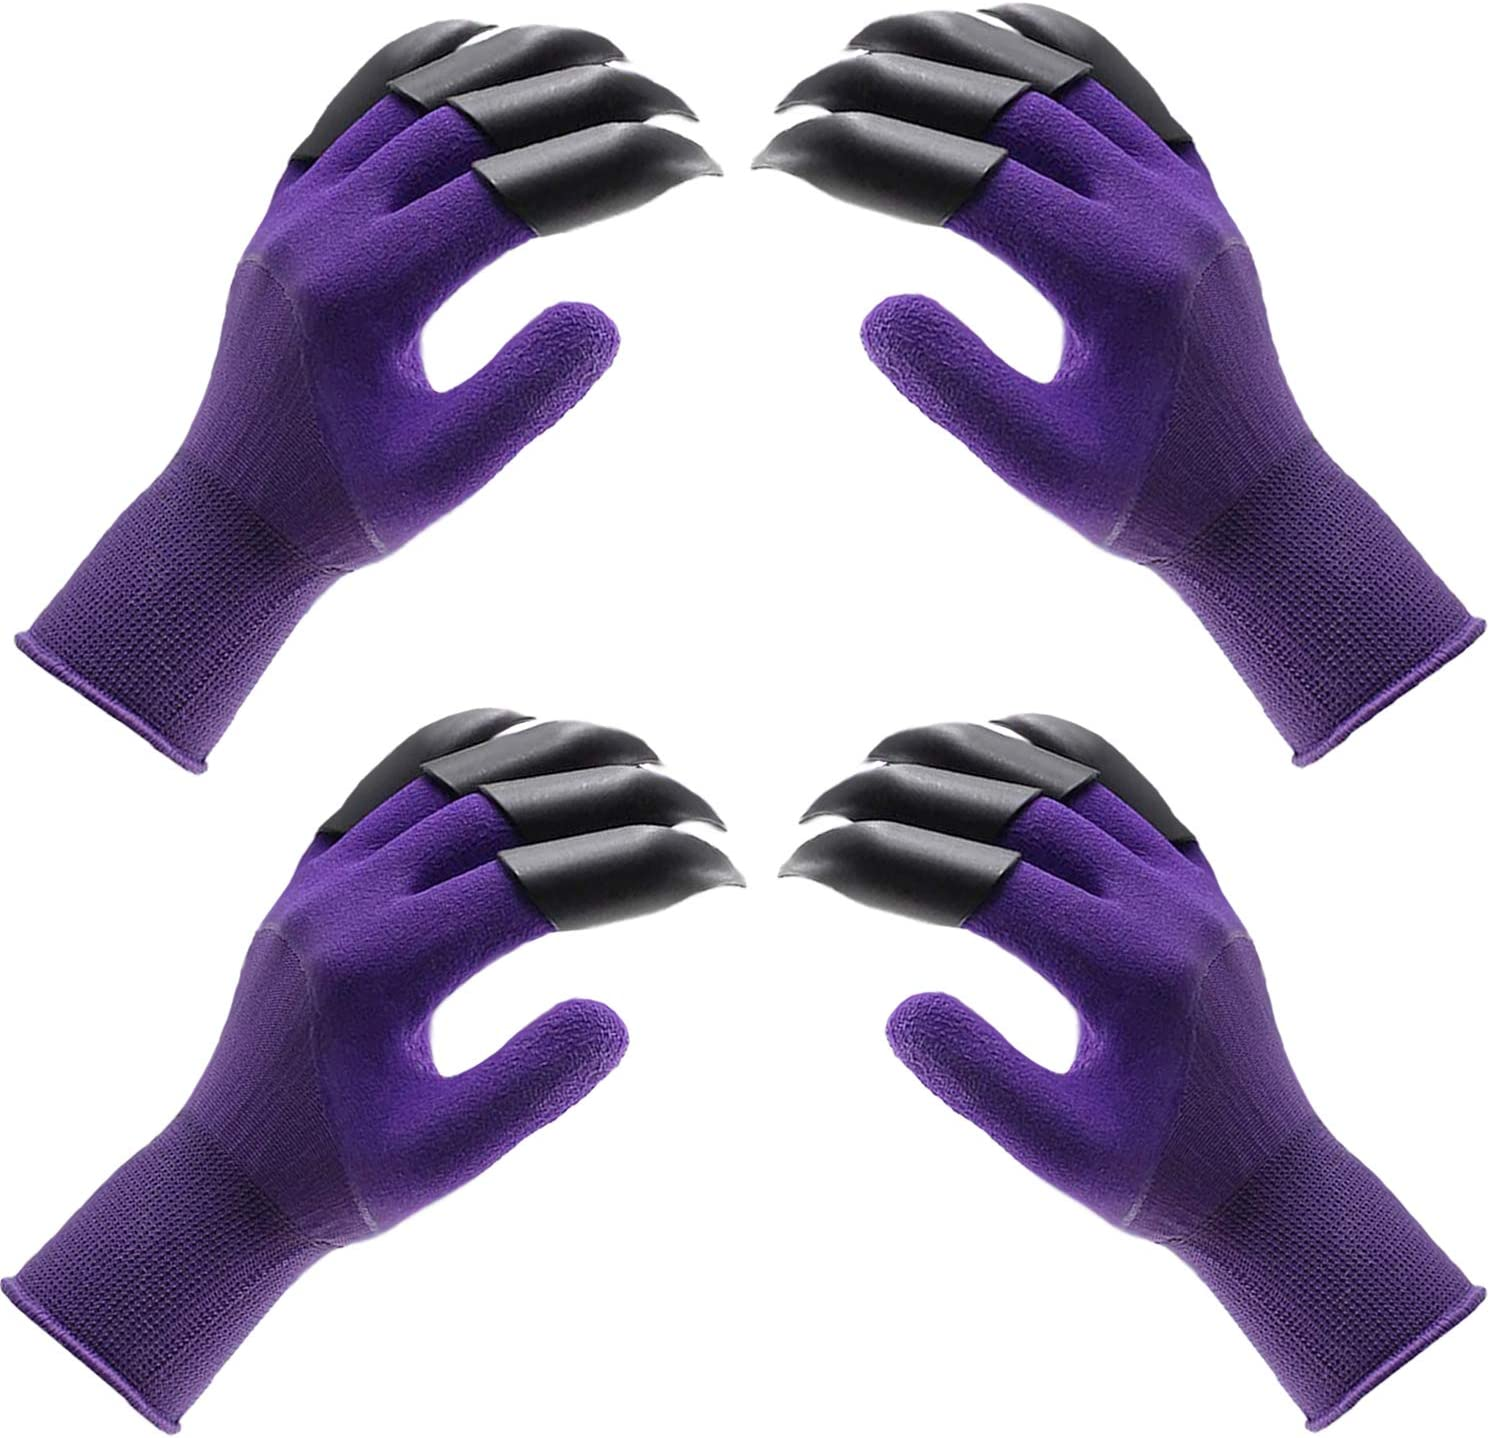 BEADNOVA Garden Gloves with Claws Digging Gloves Claw Gardening Gloves for Digging Gardening Planting (2 Pairs, Purple)